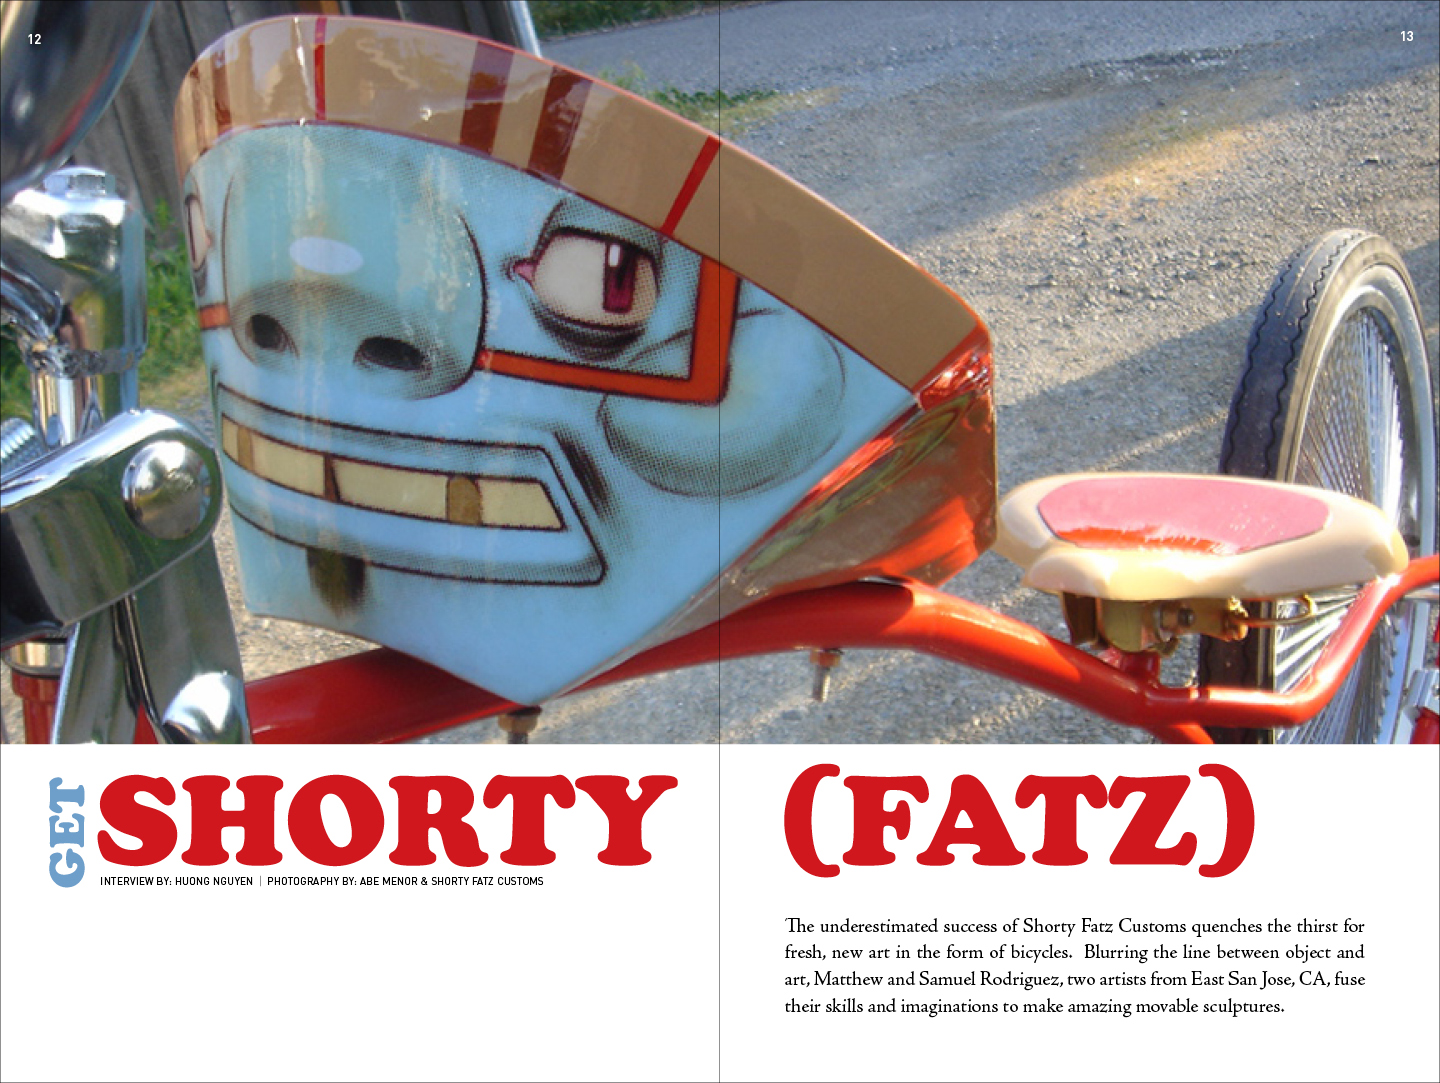 Interview 訪問: Huong Nguyen | Photography  攝影 : Abe Menor & Shorty Fatz Customs   |  Design  設計: Rowena Chan